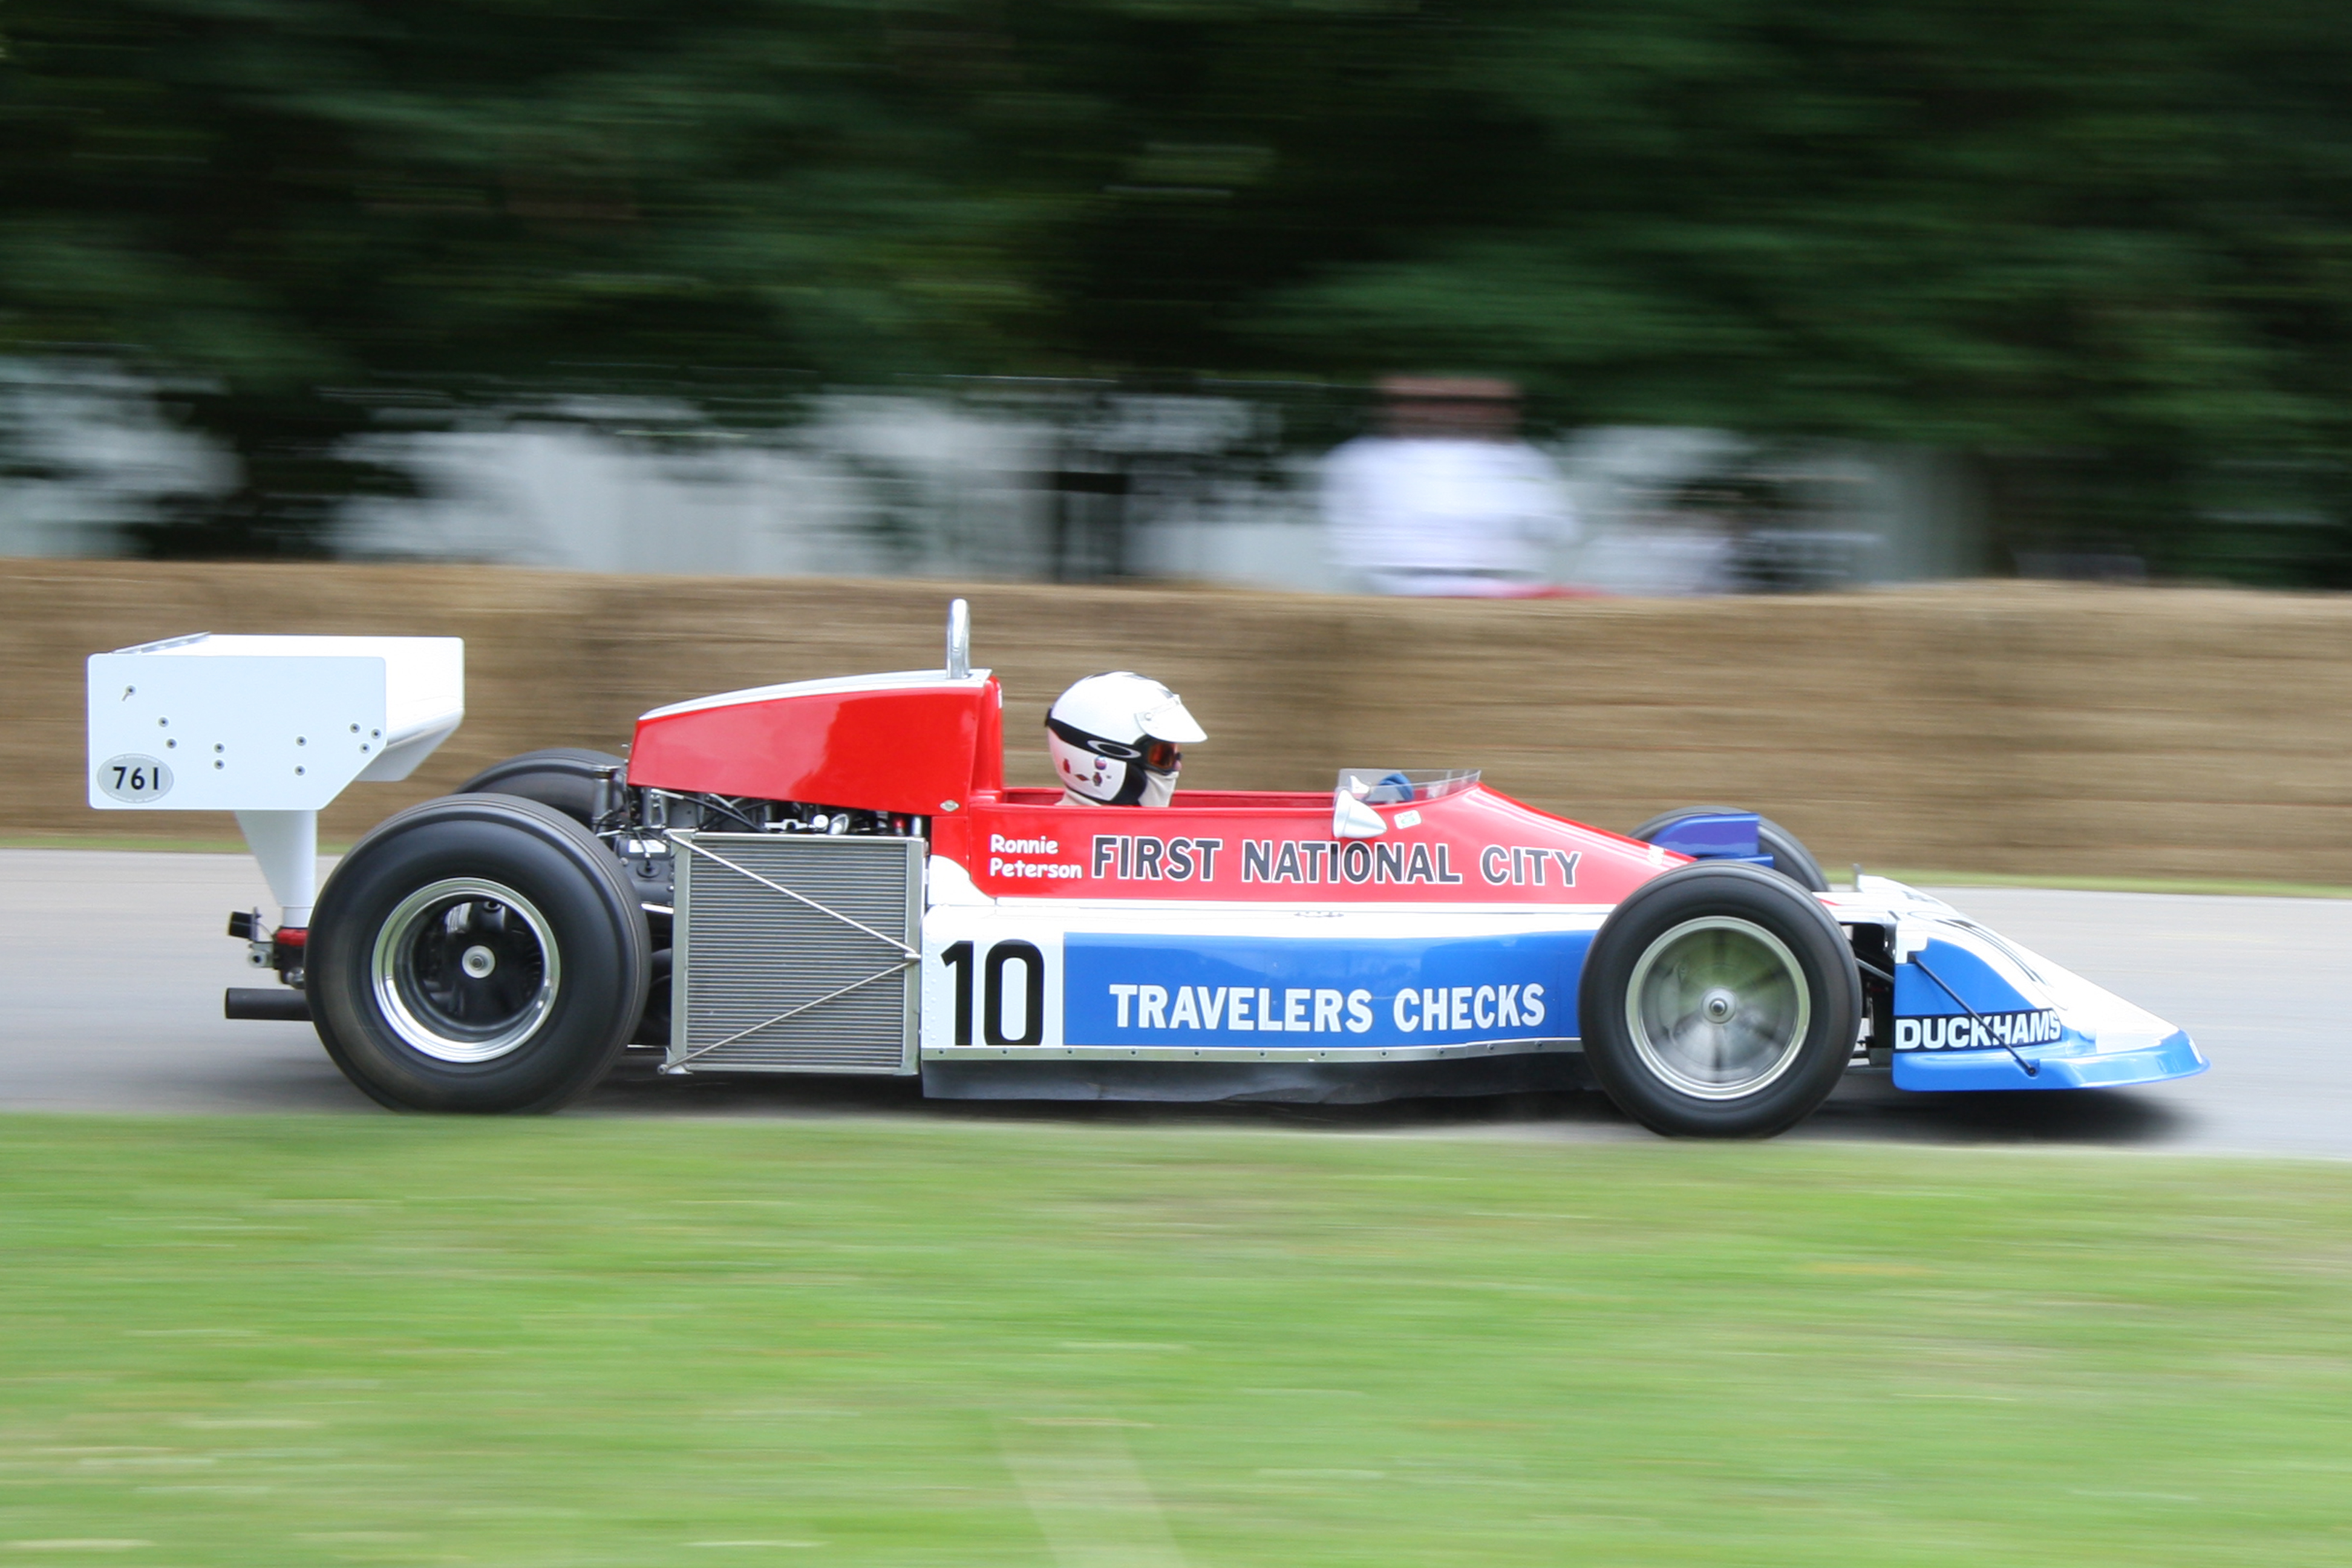 File:March 761 2008 Goodwood.jpg - Wikimedia Commons